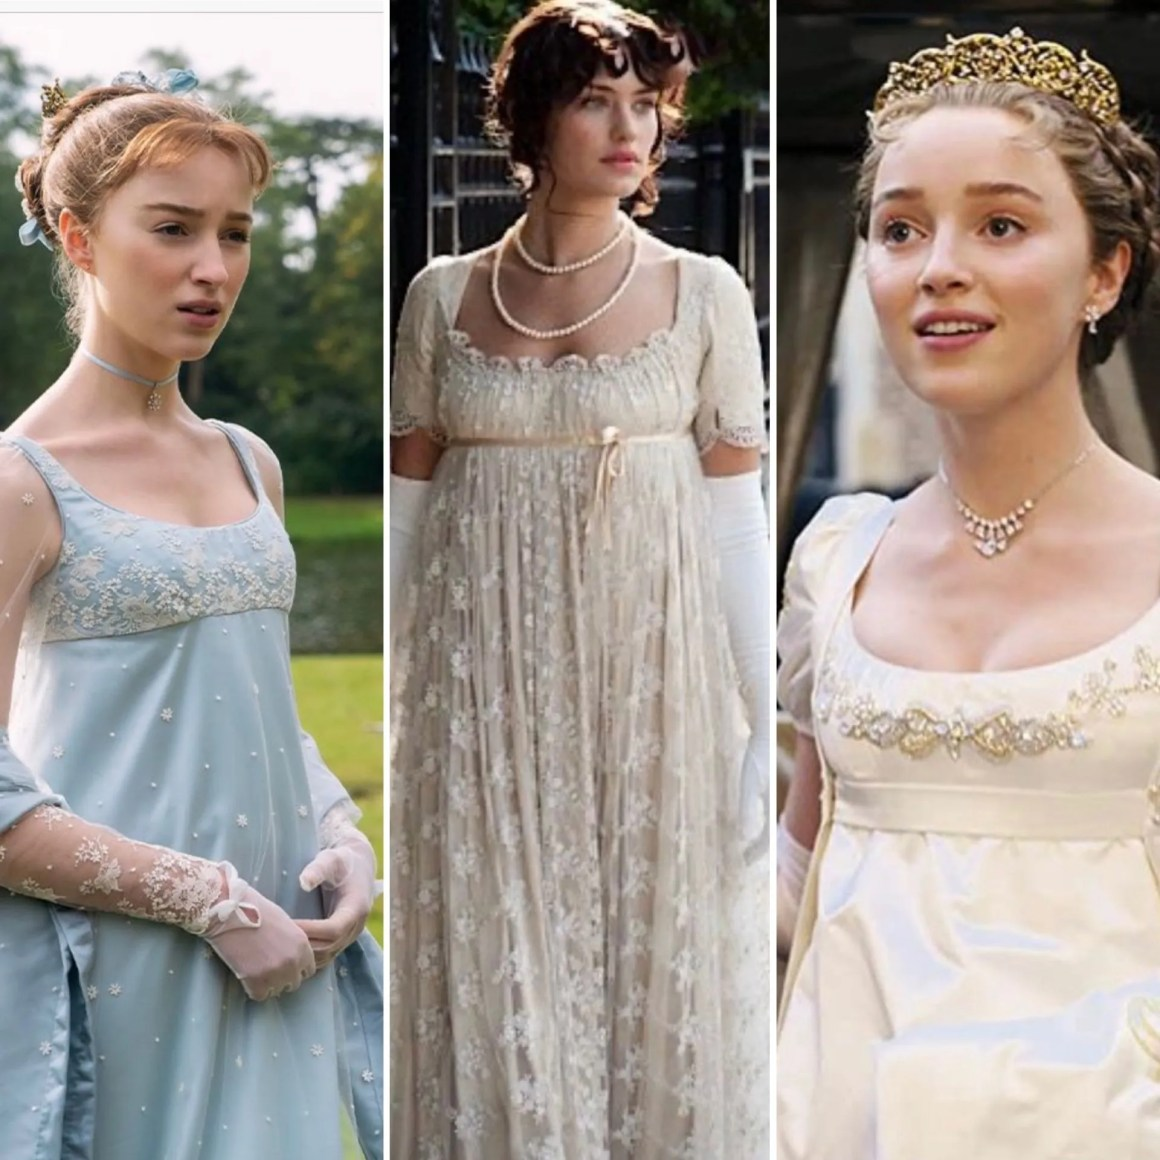 Regency style dresses from Bridgerton